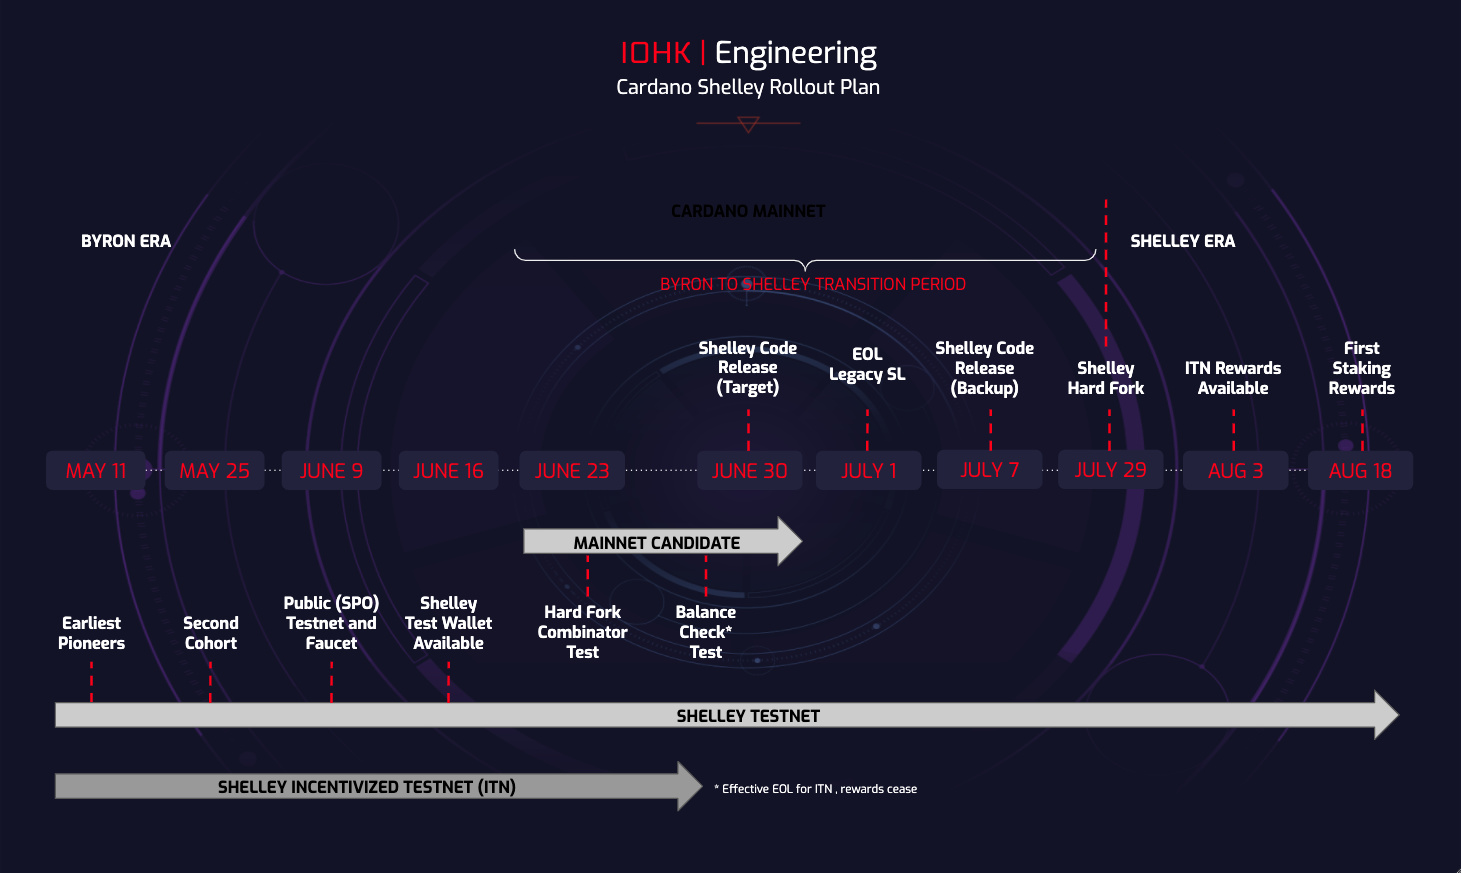 Transitioning from Byron to Shelley on Cardano. Source: IOHK.